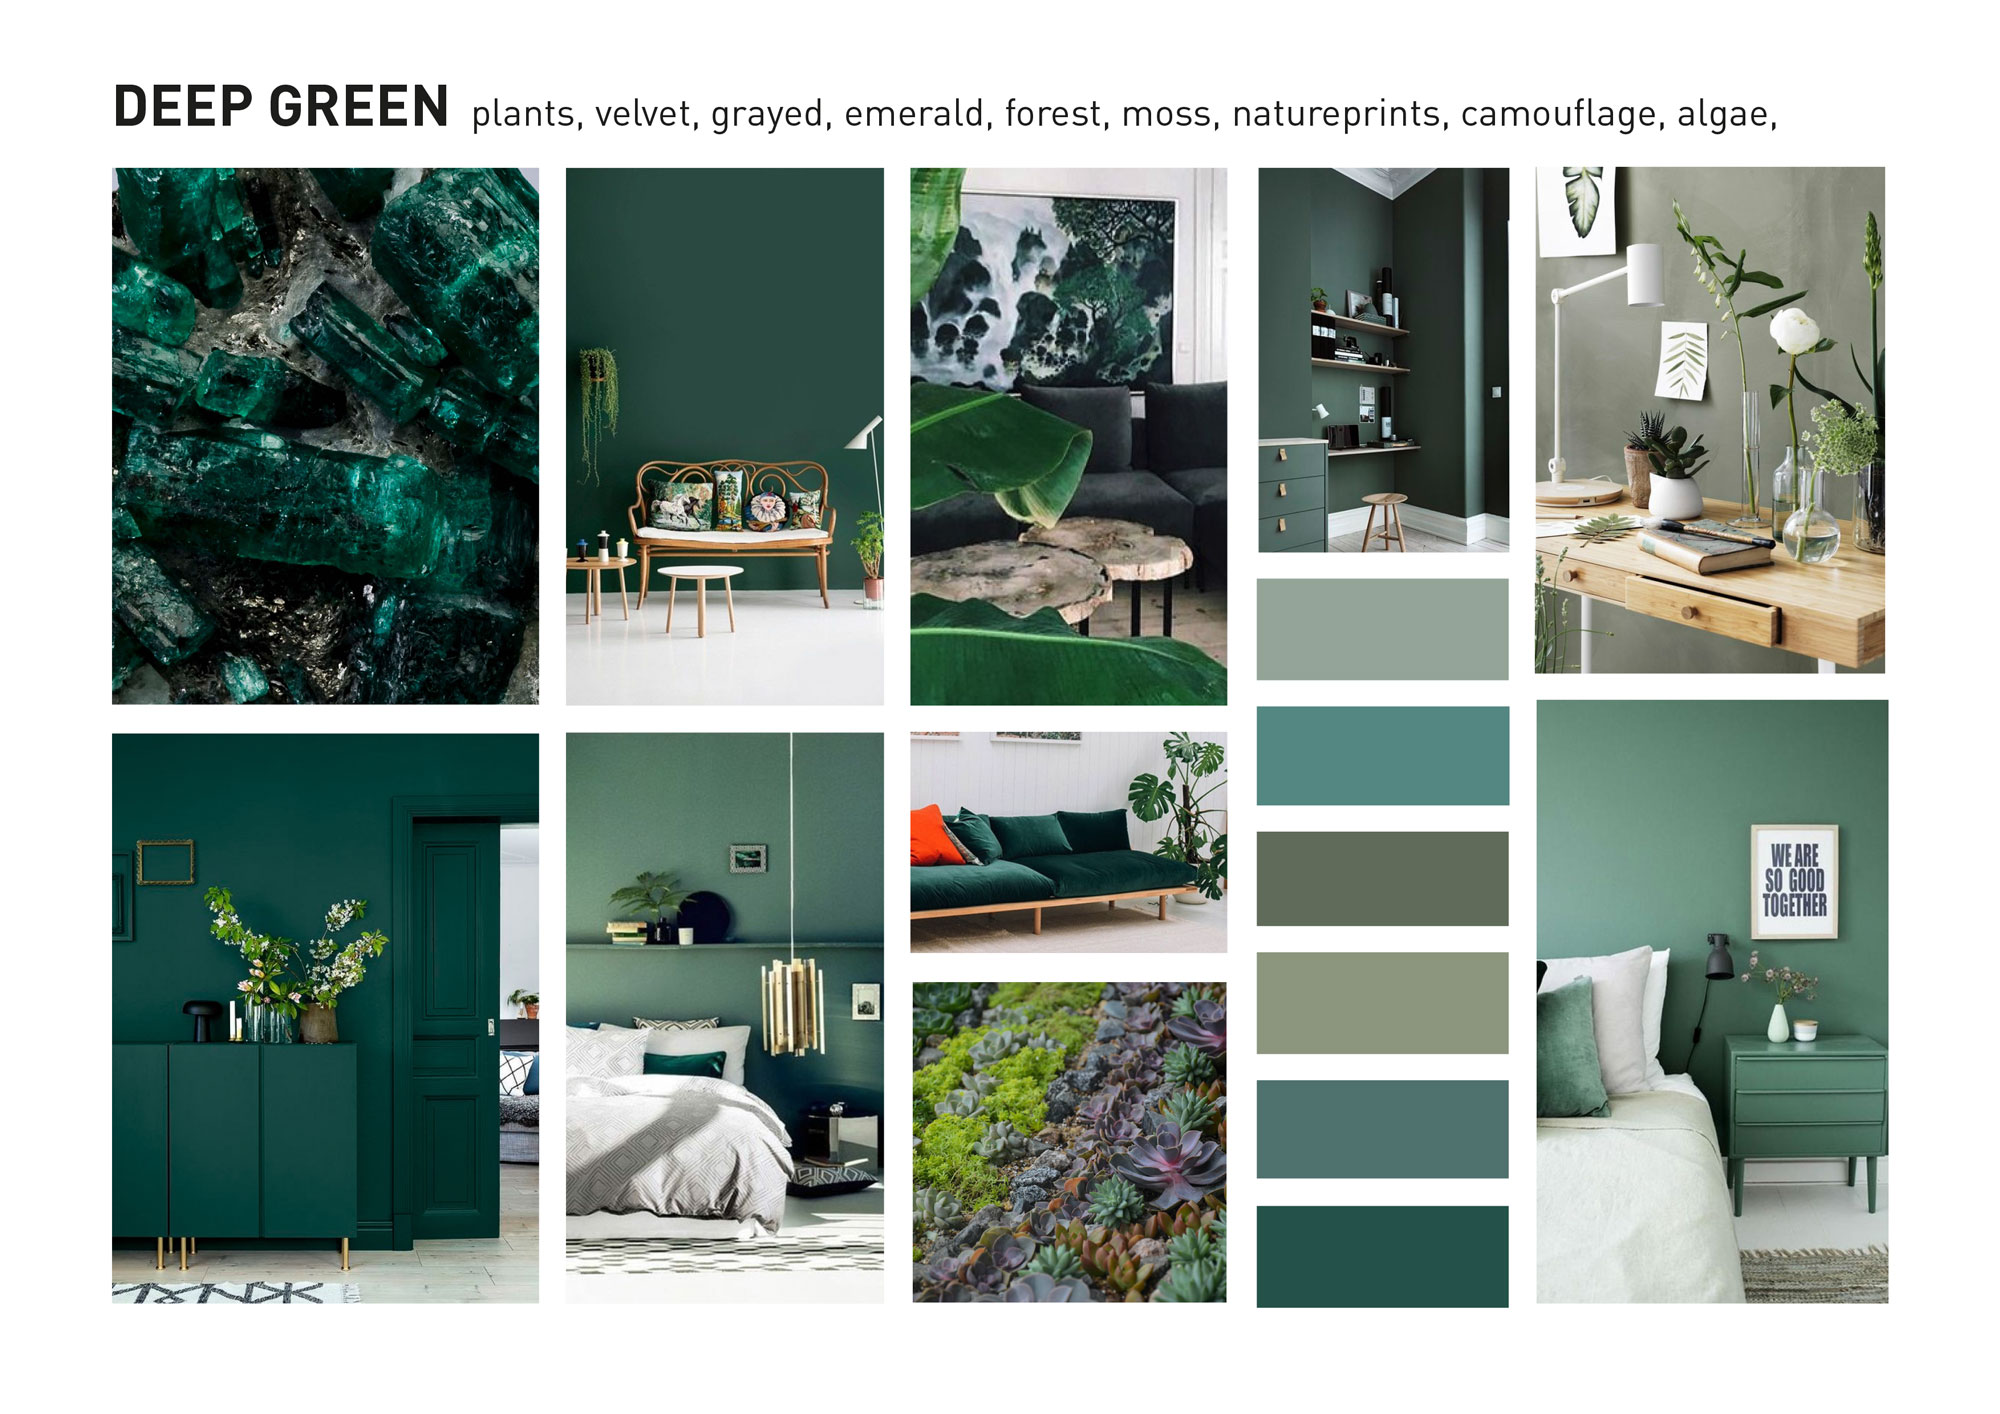 https://ininterieurs.nl/wp-content/uploads/2017/07/deep-green-color-and-material-forecast-interior-design-trends-2018-1.jpg